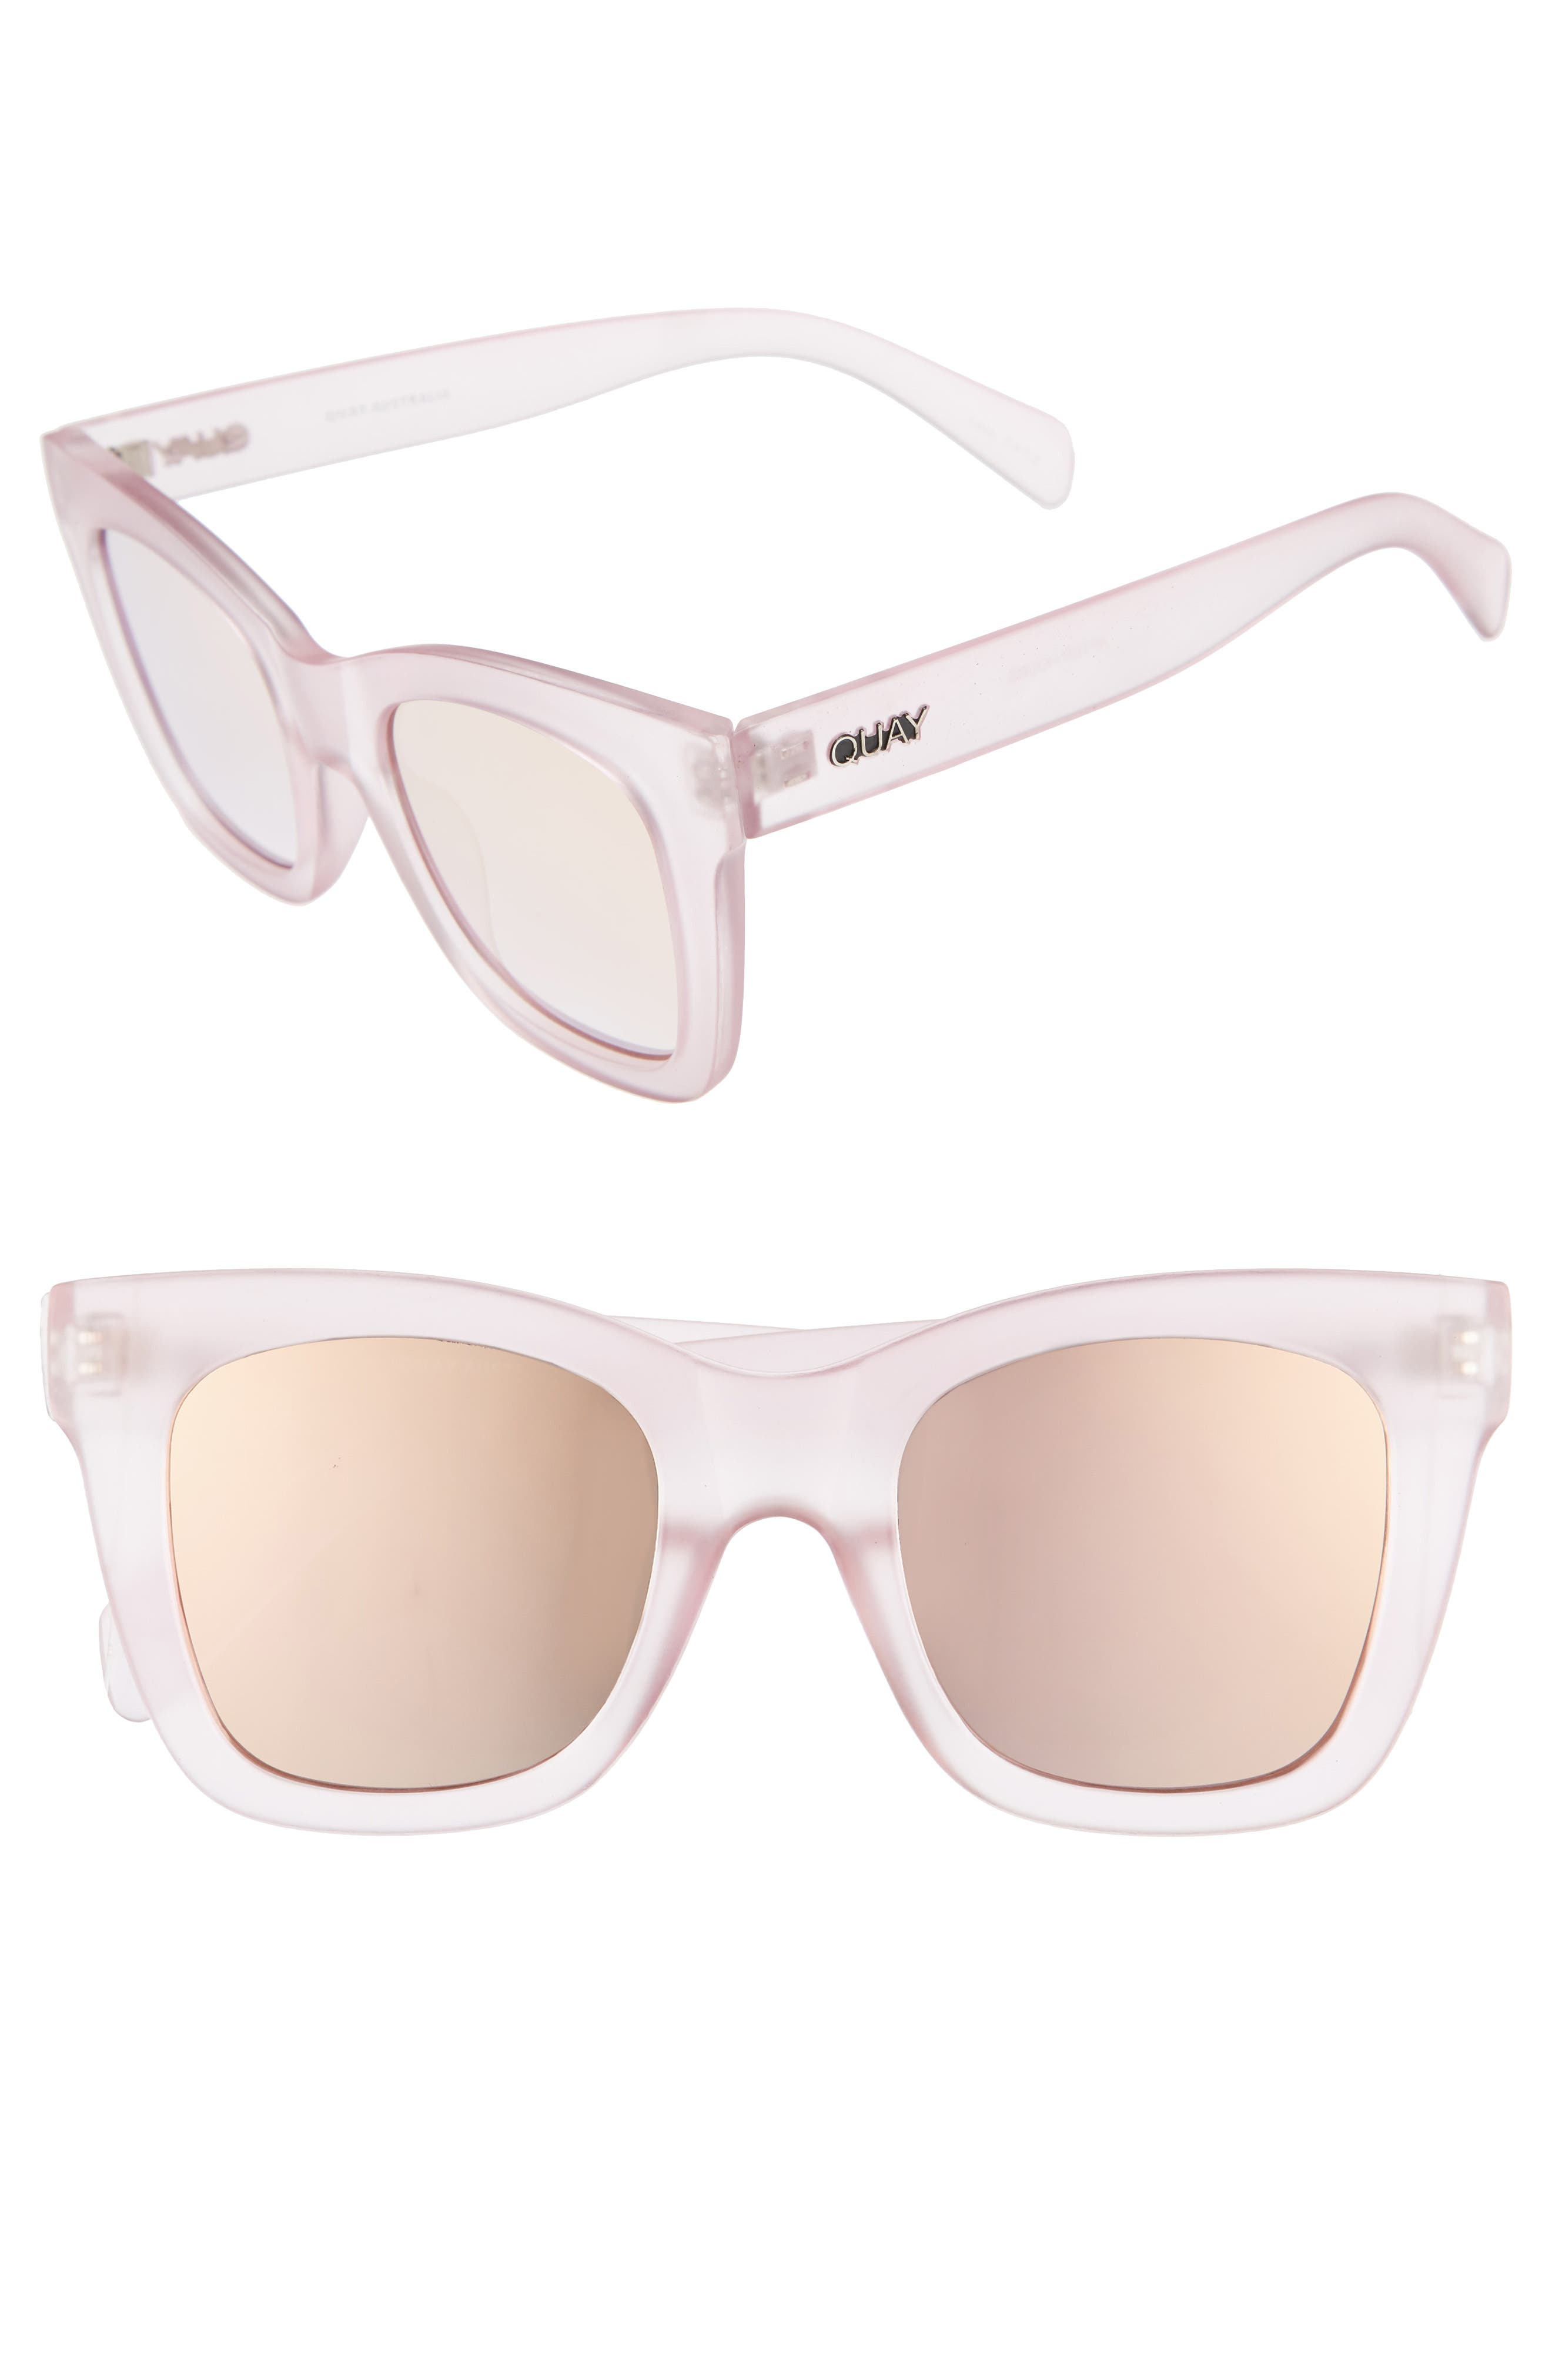 After Hours 50mm Square Sunglasses,                         Main,                         color, Pink